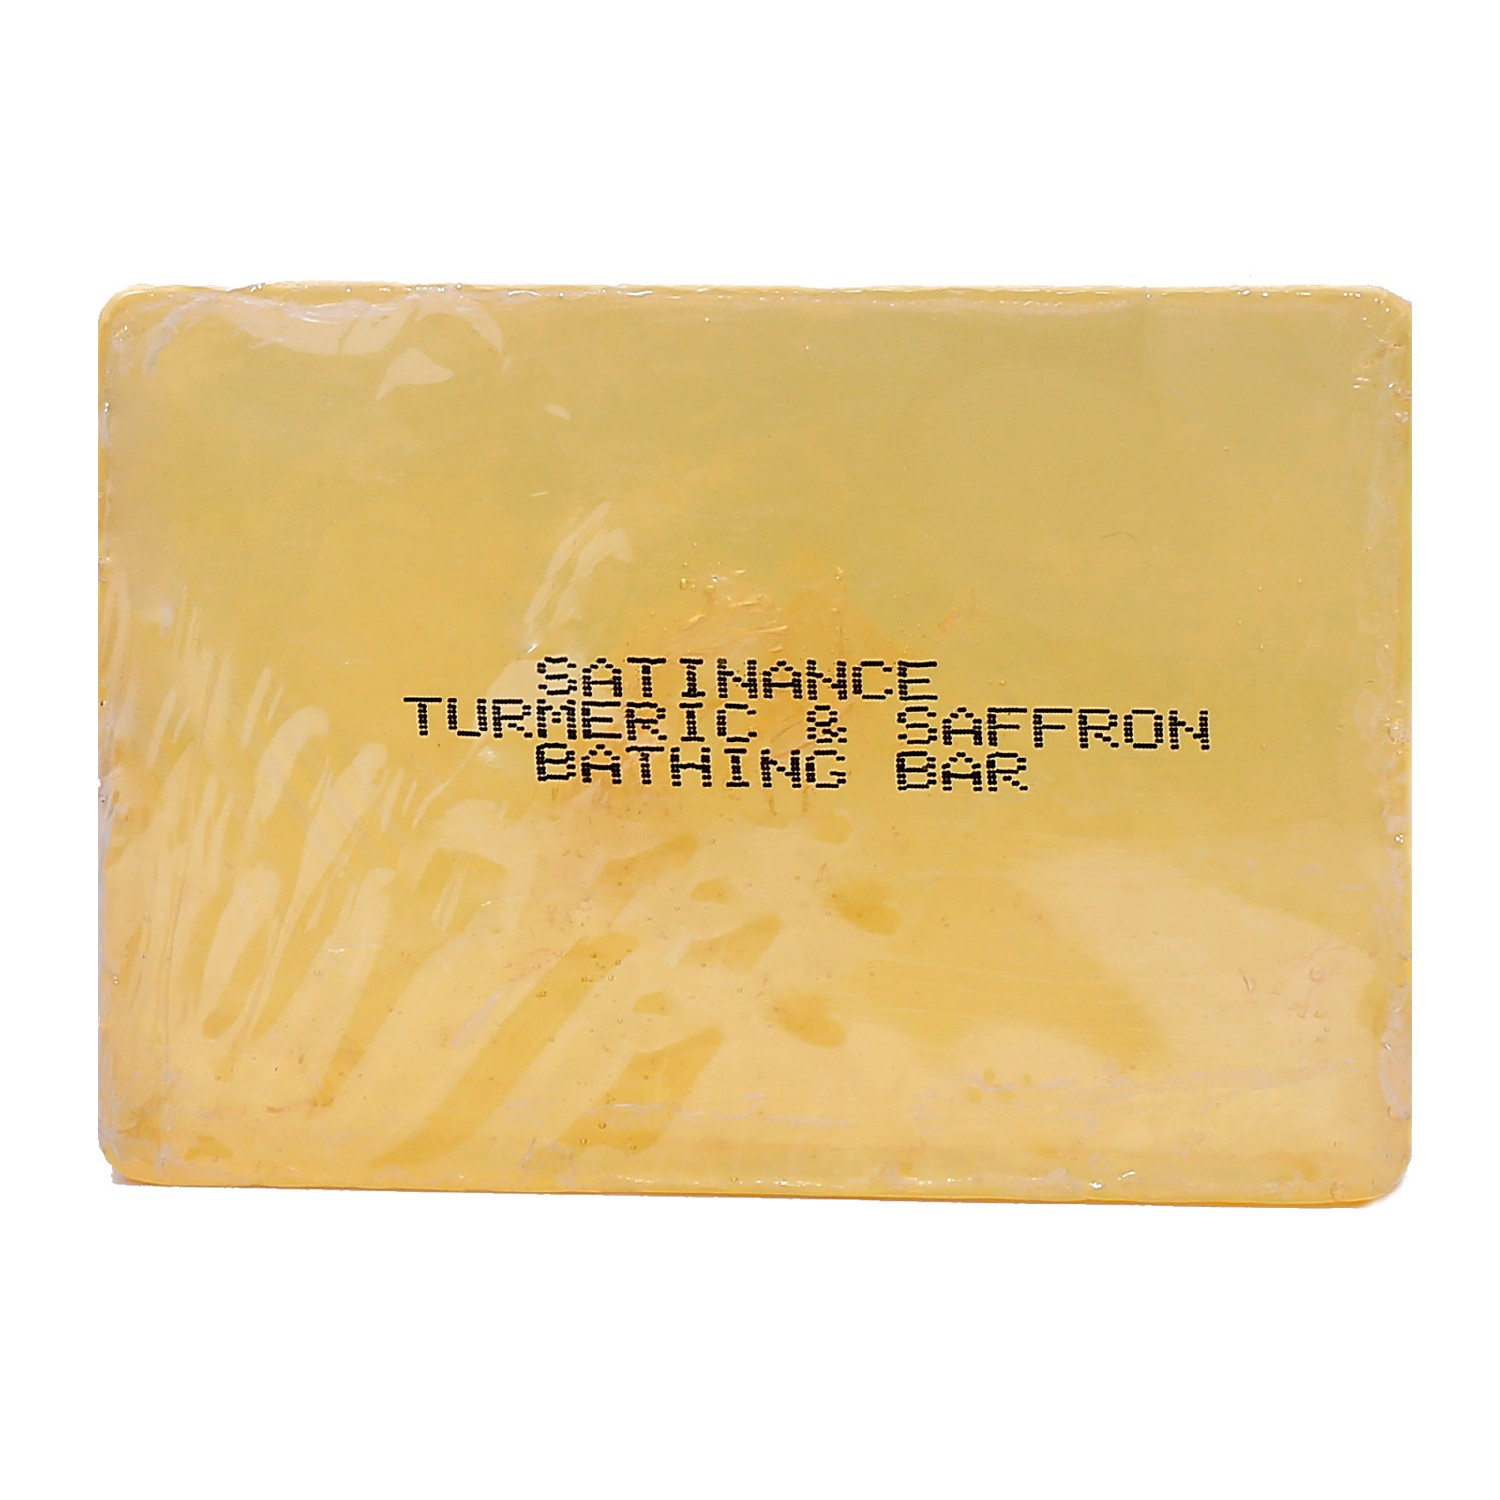 Turmeric & Saffron Aromatherapy Bathing Bar 100g - Sulphate, Parabeen, SLS Free, No Added Colors & Perfumes.